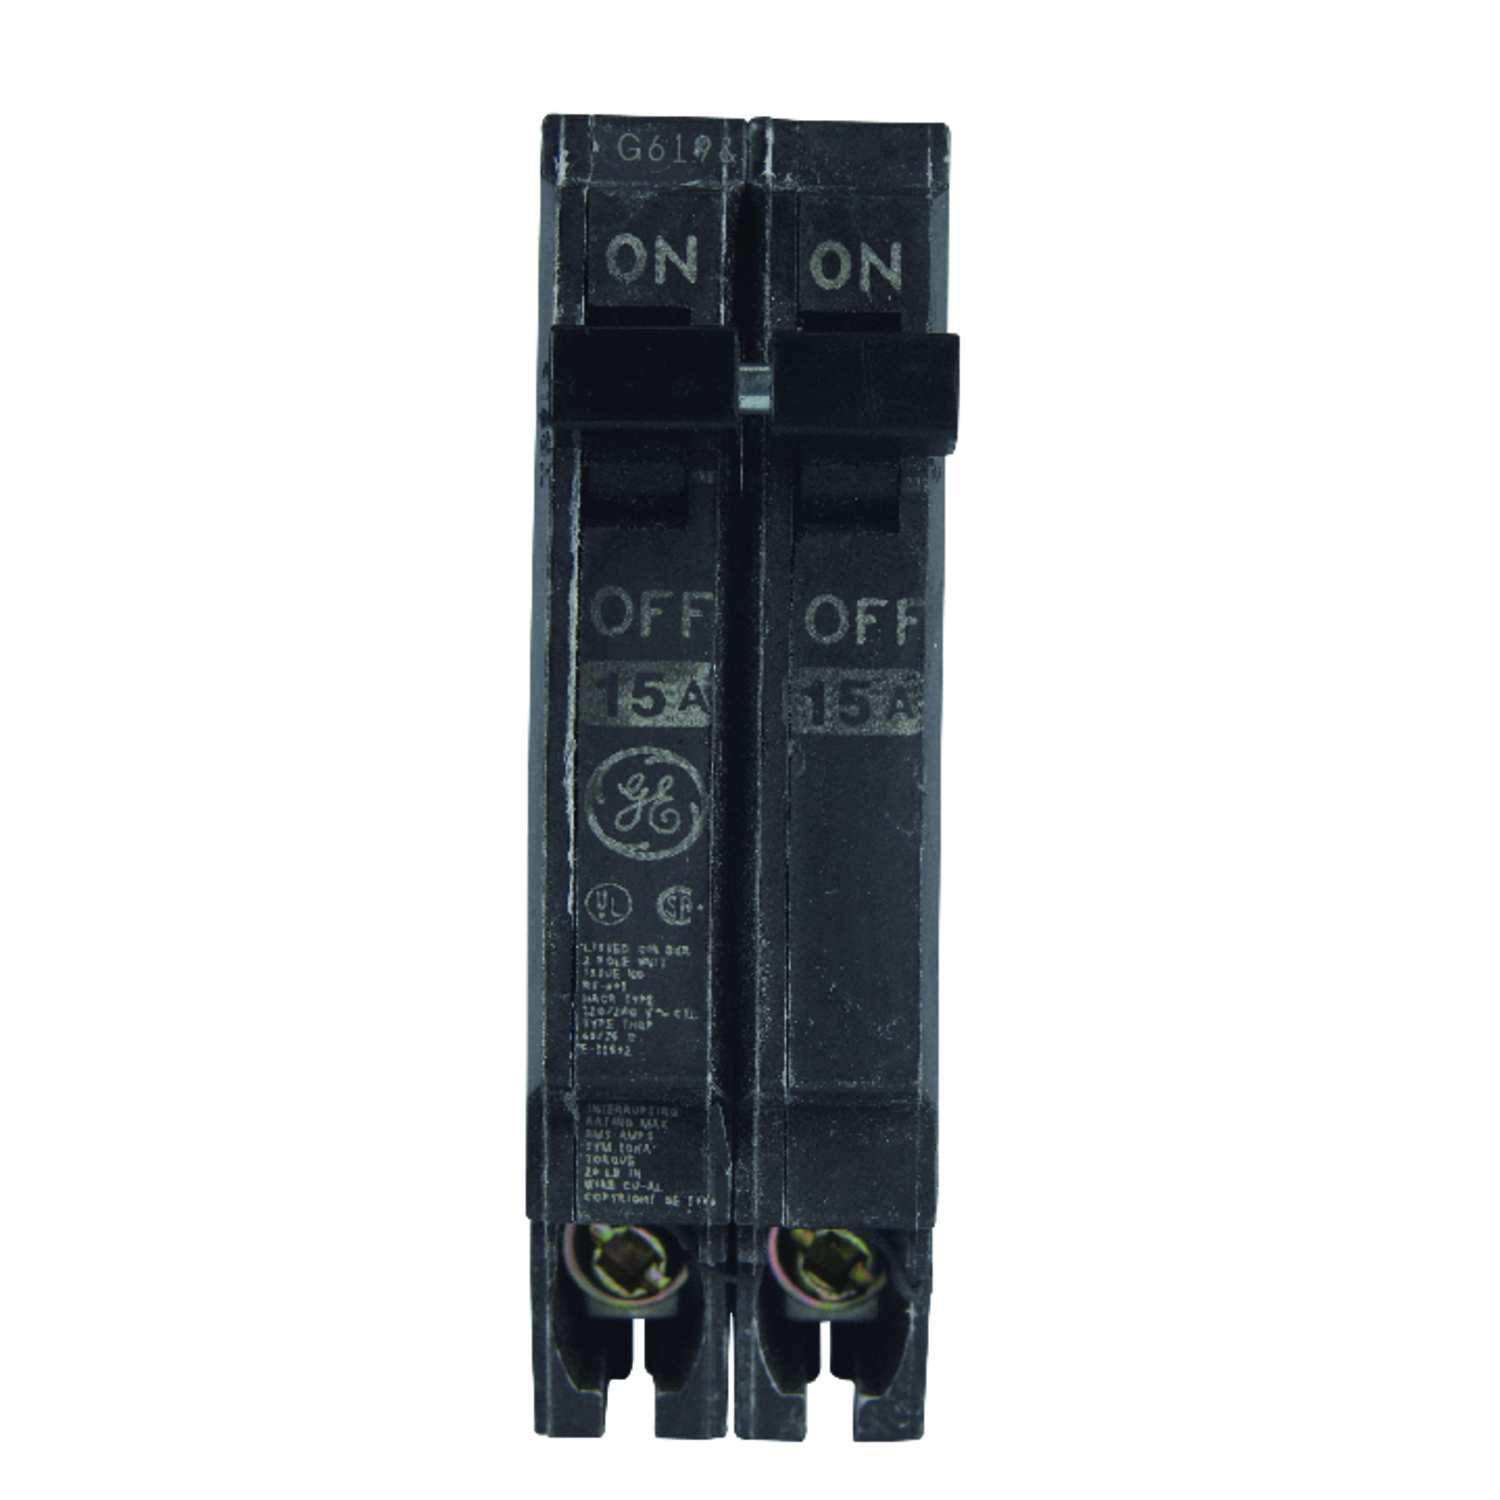 Outlet Buss Fuse Box Data Circuit Diagram Ultrasonic Insect Killer Electricalequipmentcircuit Electric Plug In Residential Electrical Symbols U2022 Rh Wiringdiagramnow Today Motor